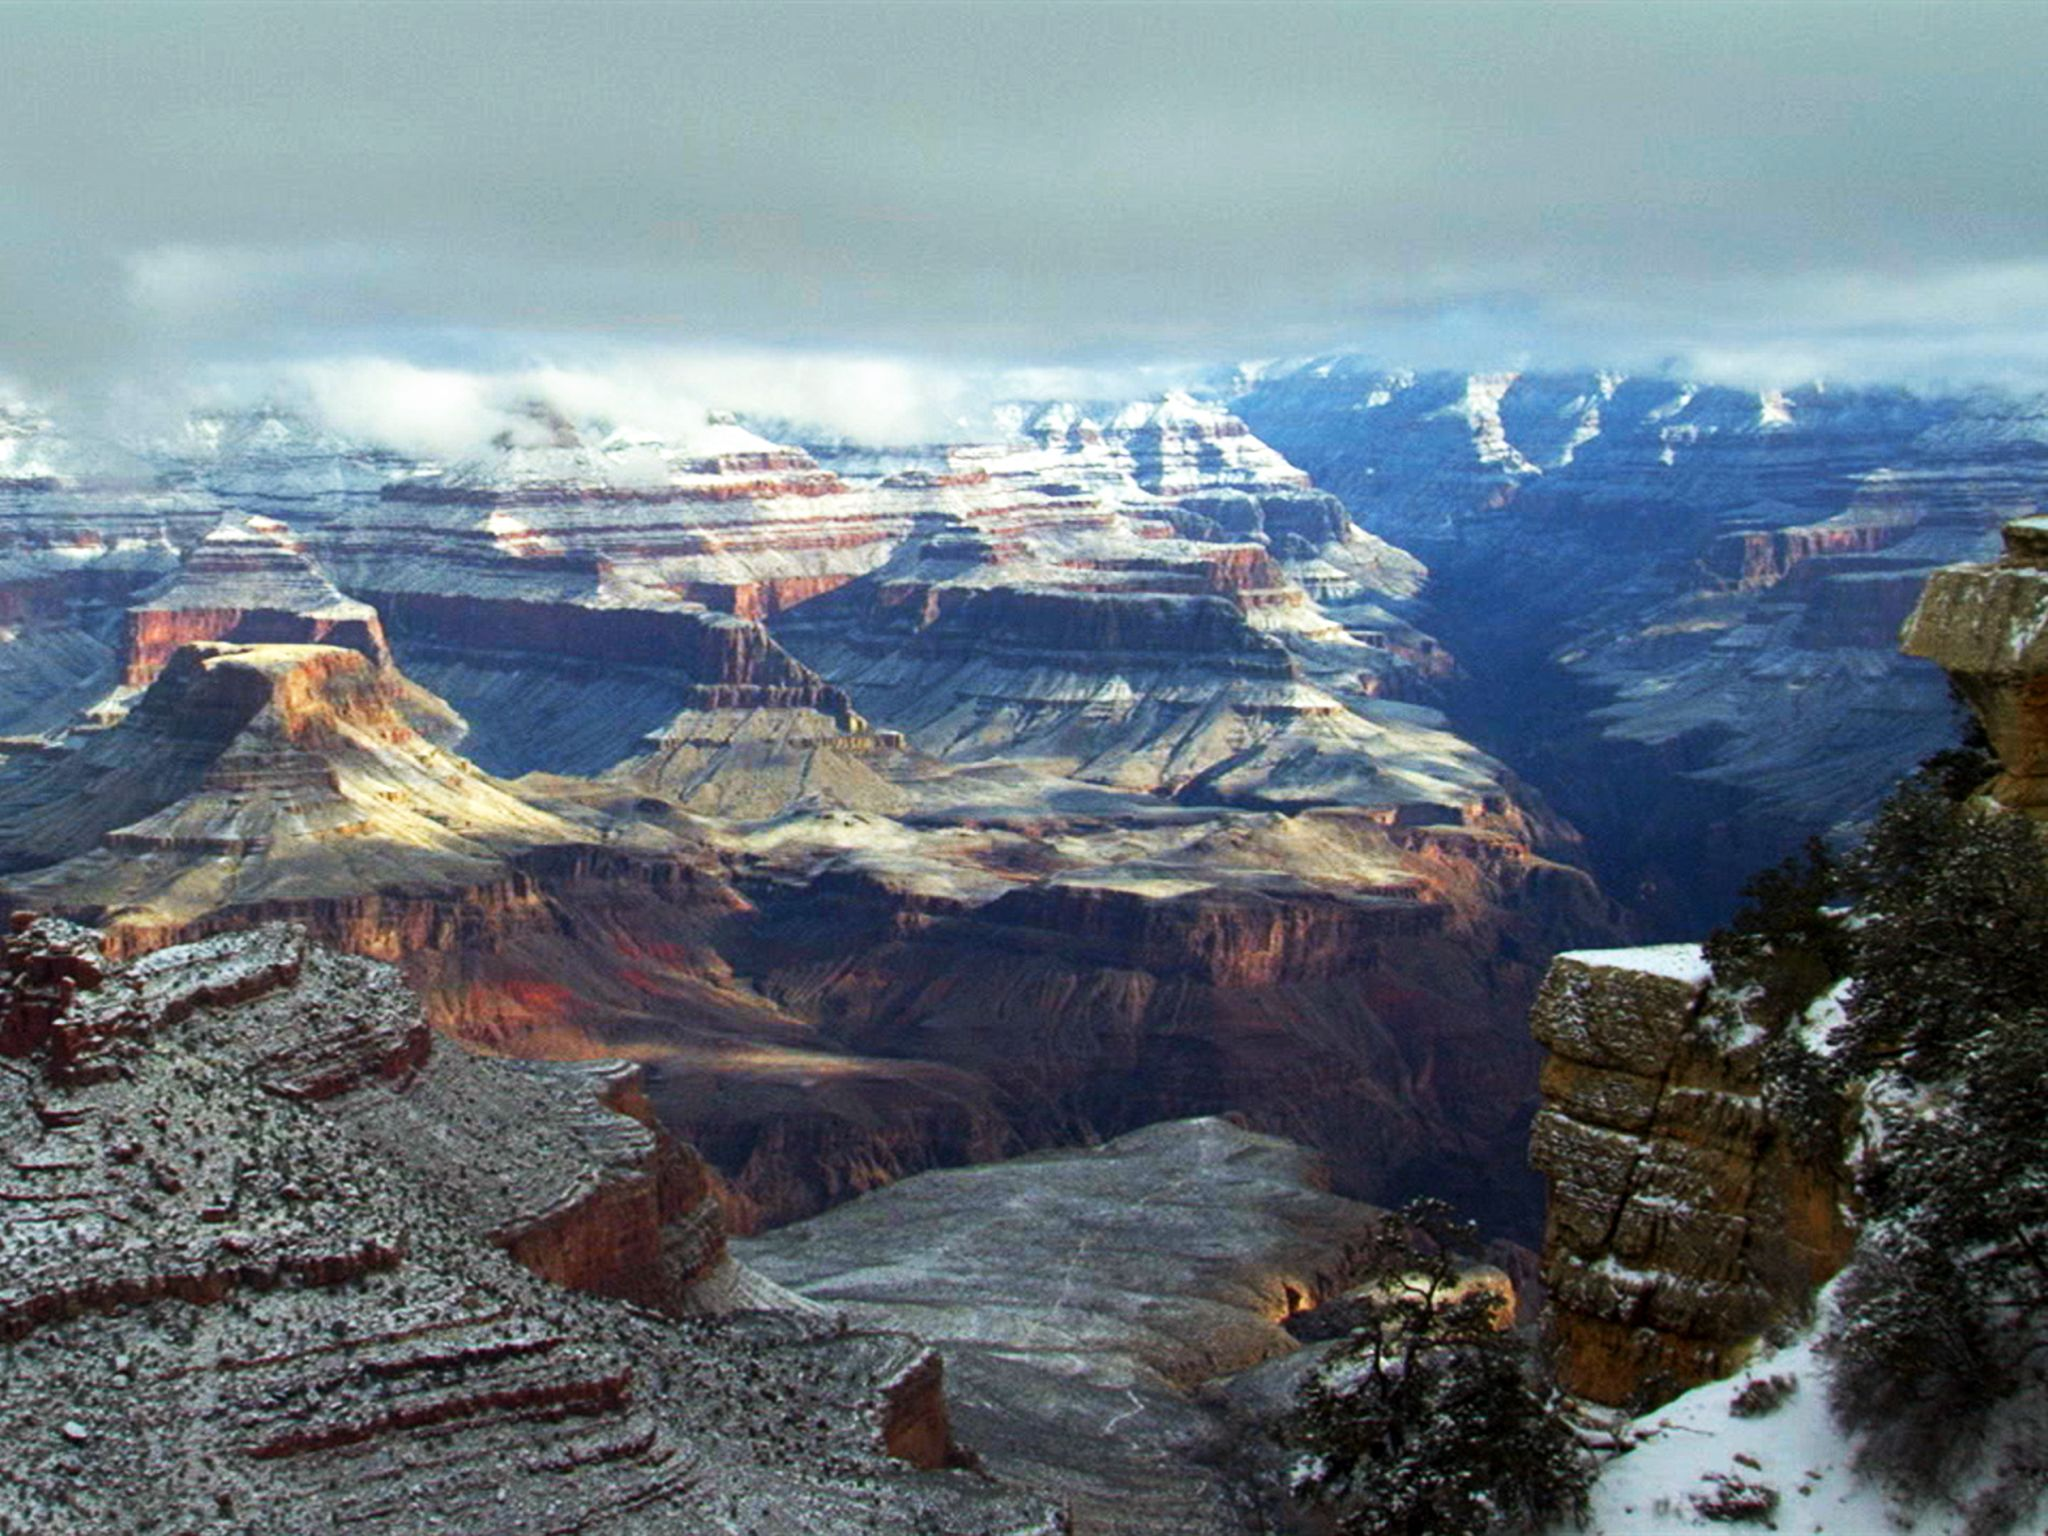 Grand Canyon National Park, Ariz.: Winter is a peaceful time in the Grand Canyon National Park.... [Photo of the day - February 2016]